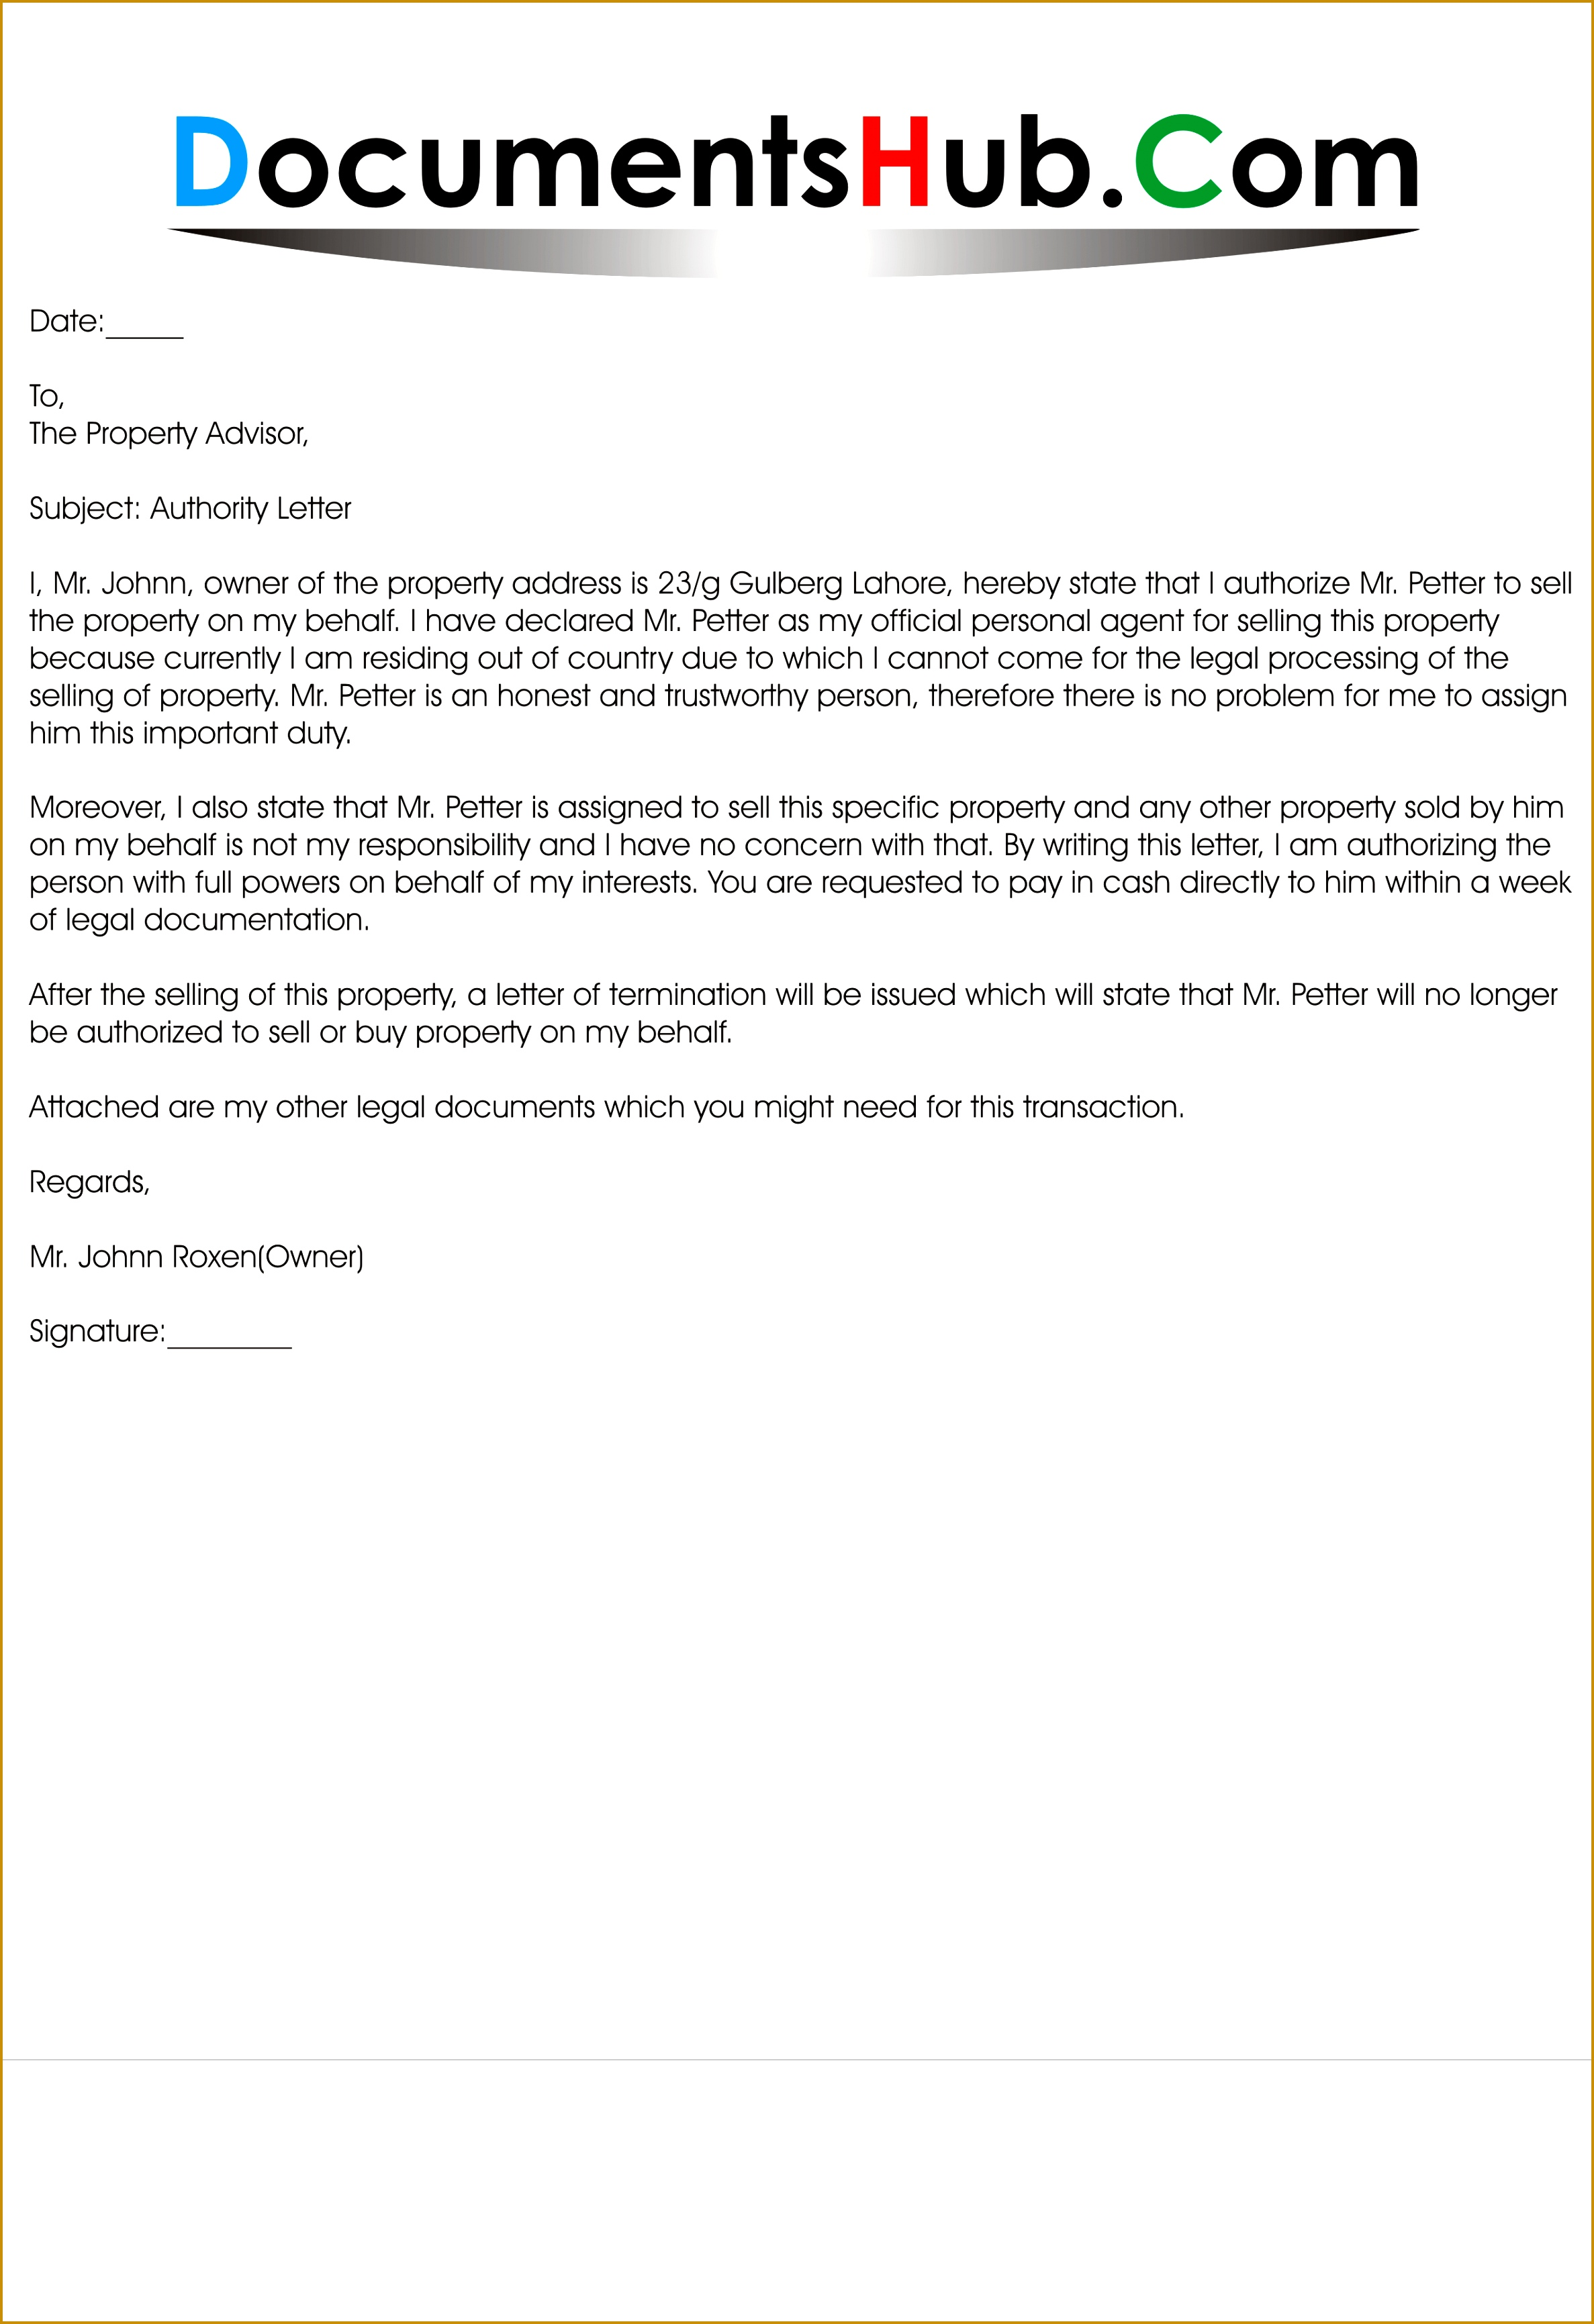 Example of Authorization Letter to Sell Property 34622374